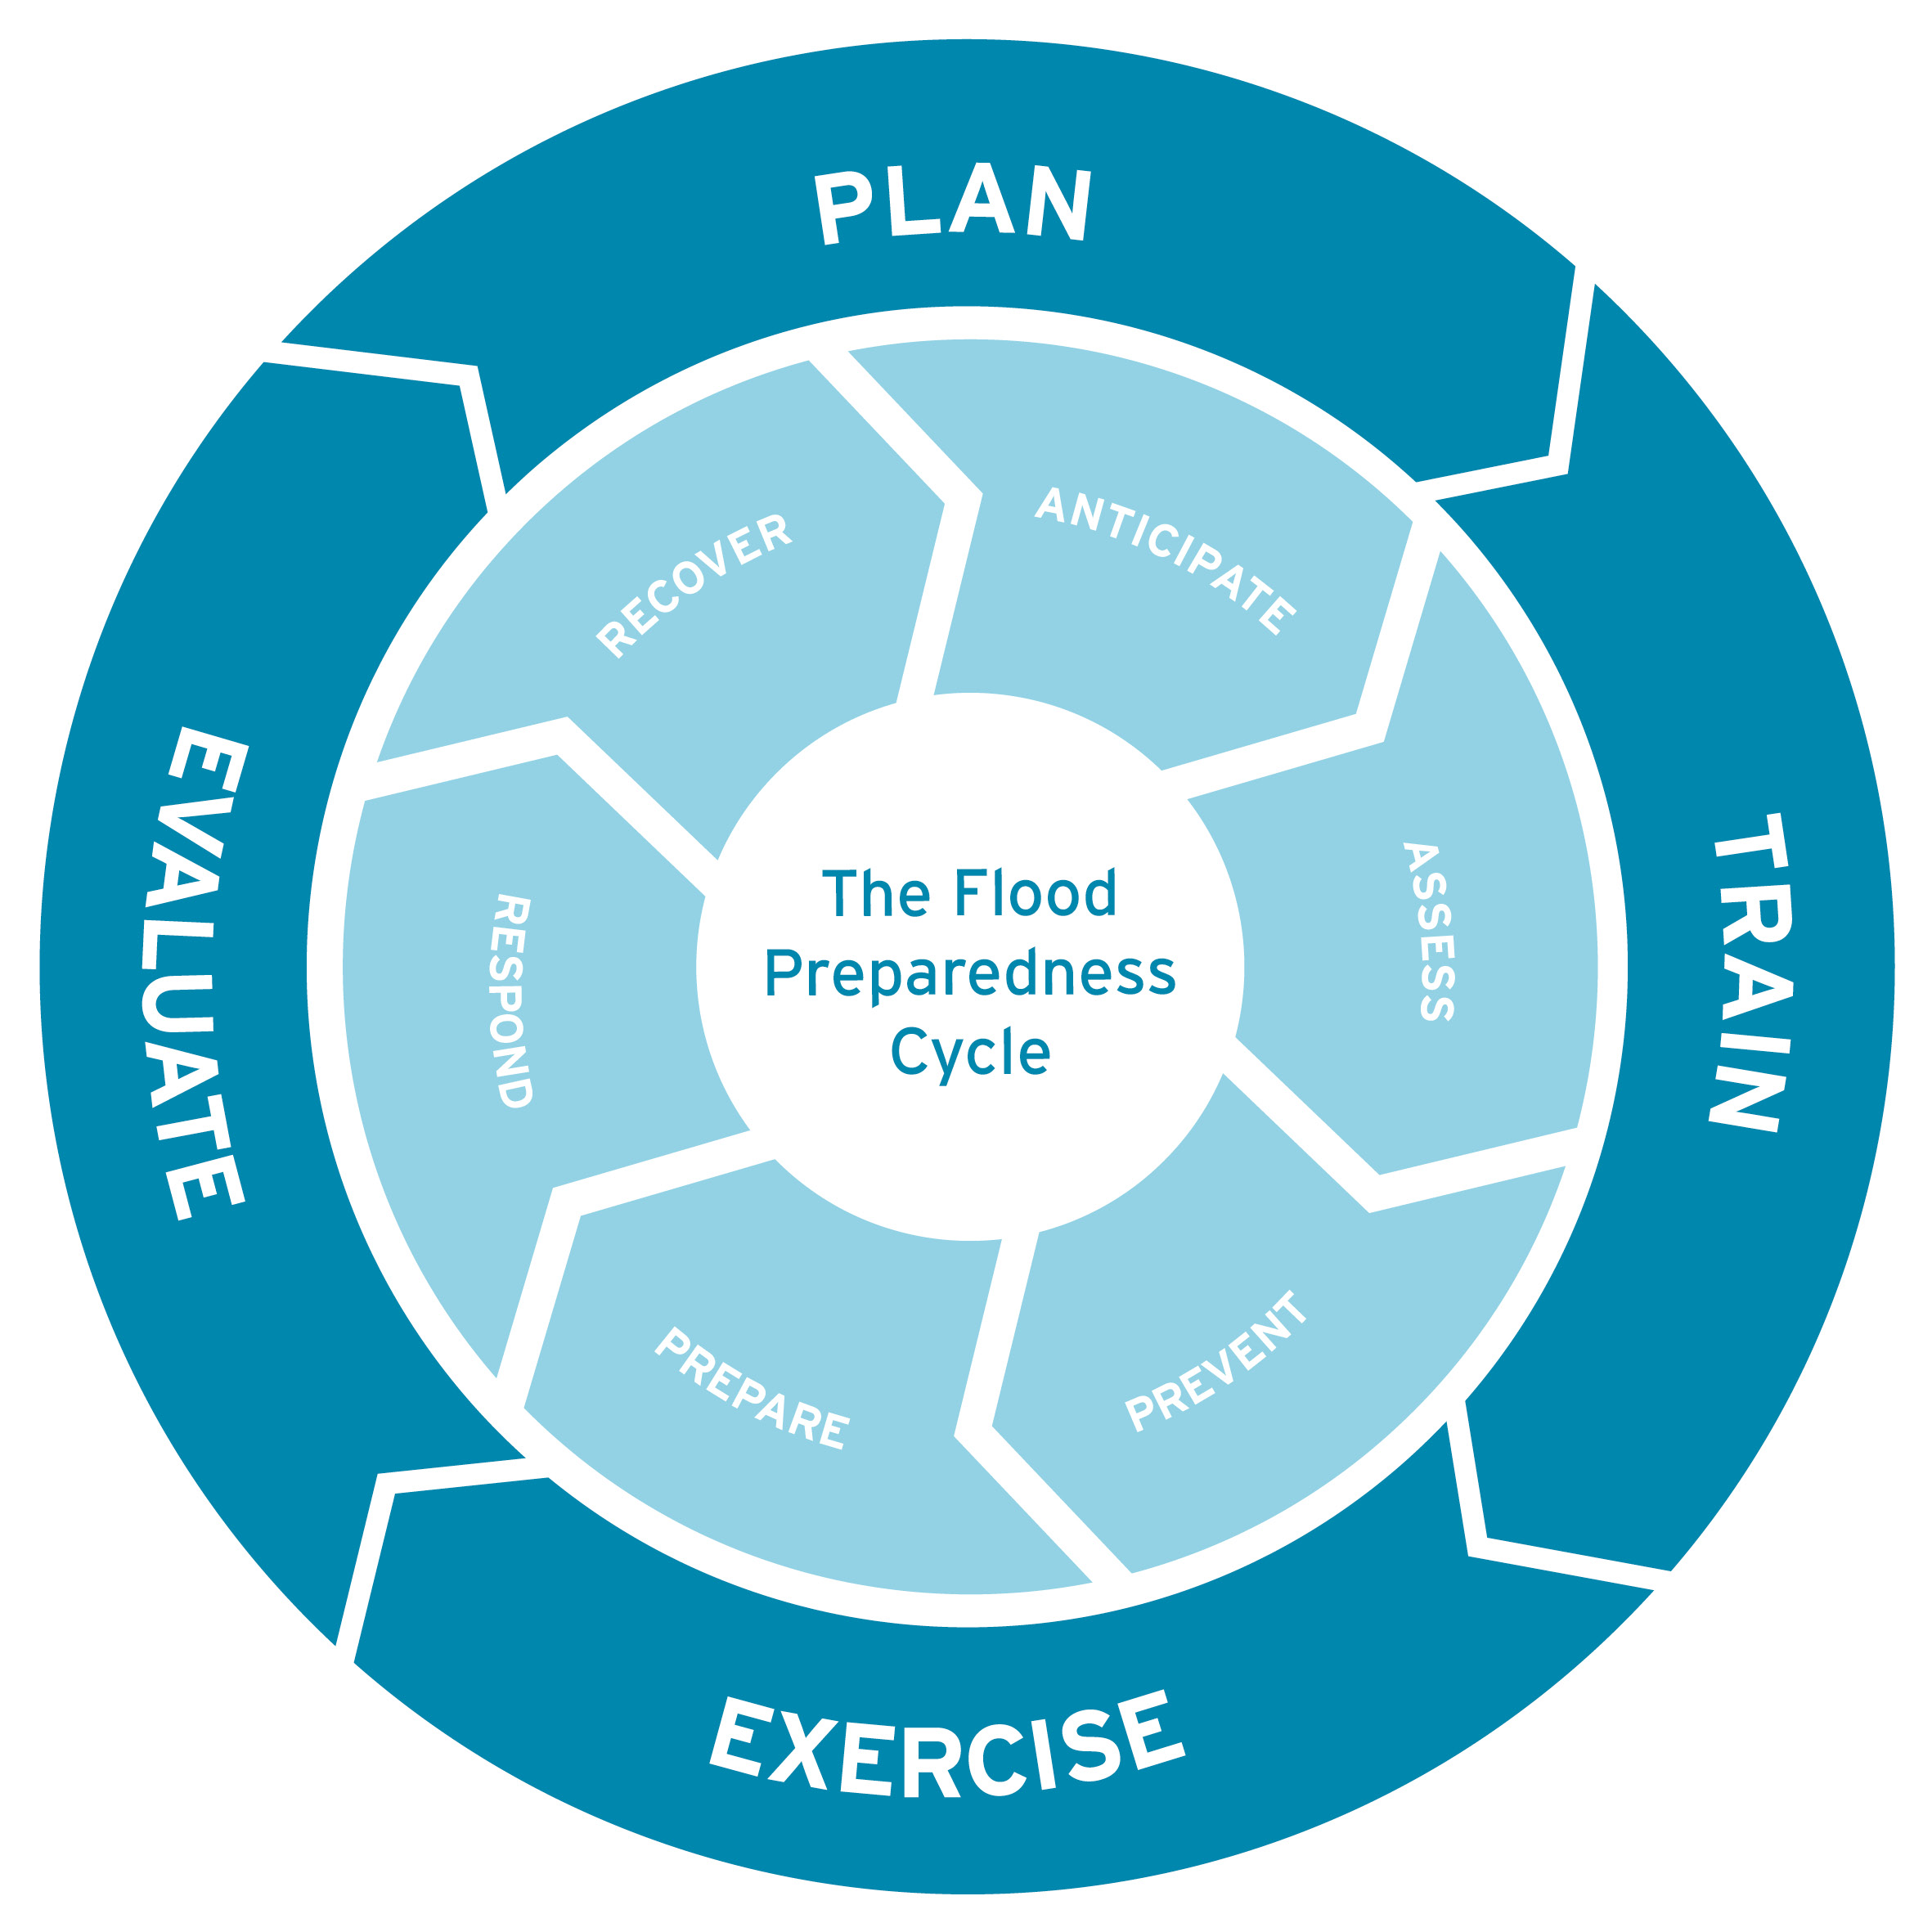 Why Should We Prepare For Flood Incidents And Emergencies